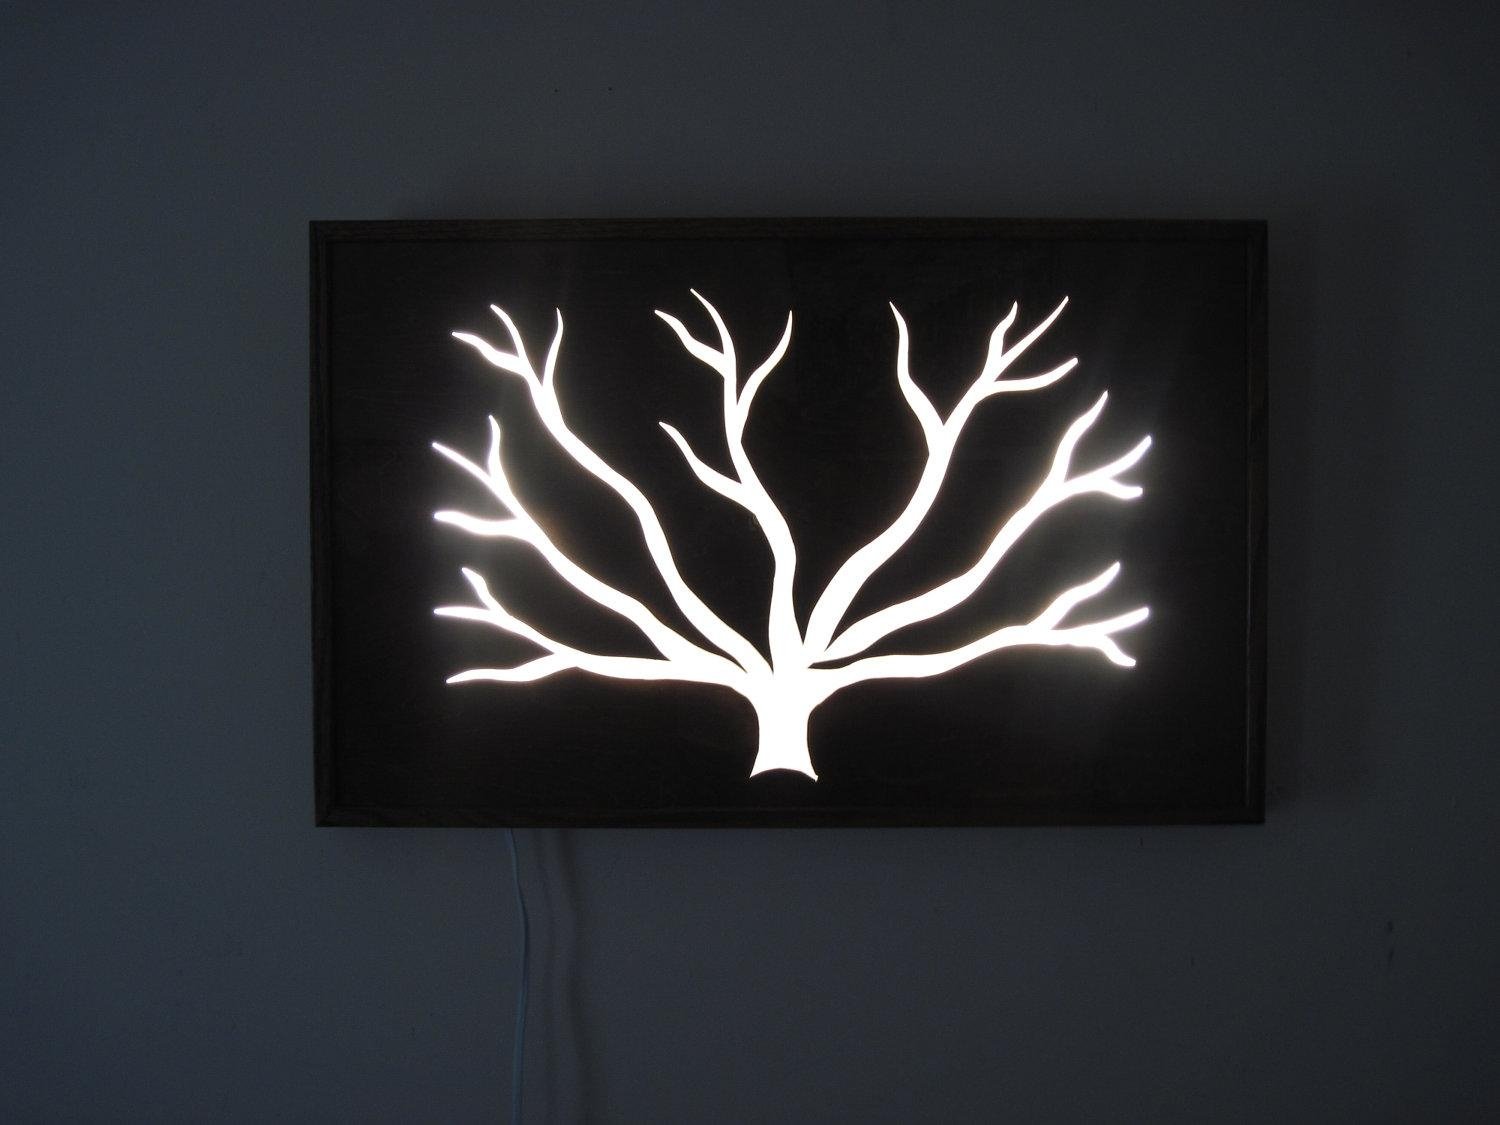 Wall Art Lights – 15 Best Decisions You Can Make In Regards To Within Wall Art With Lights (Image 18 of 20)